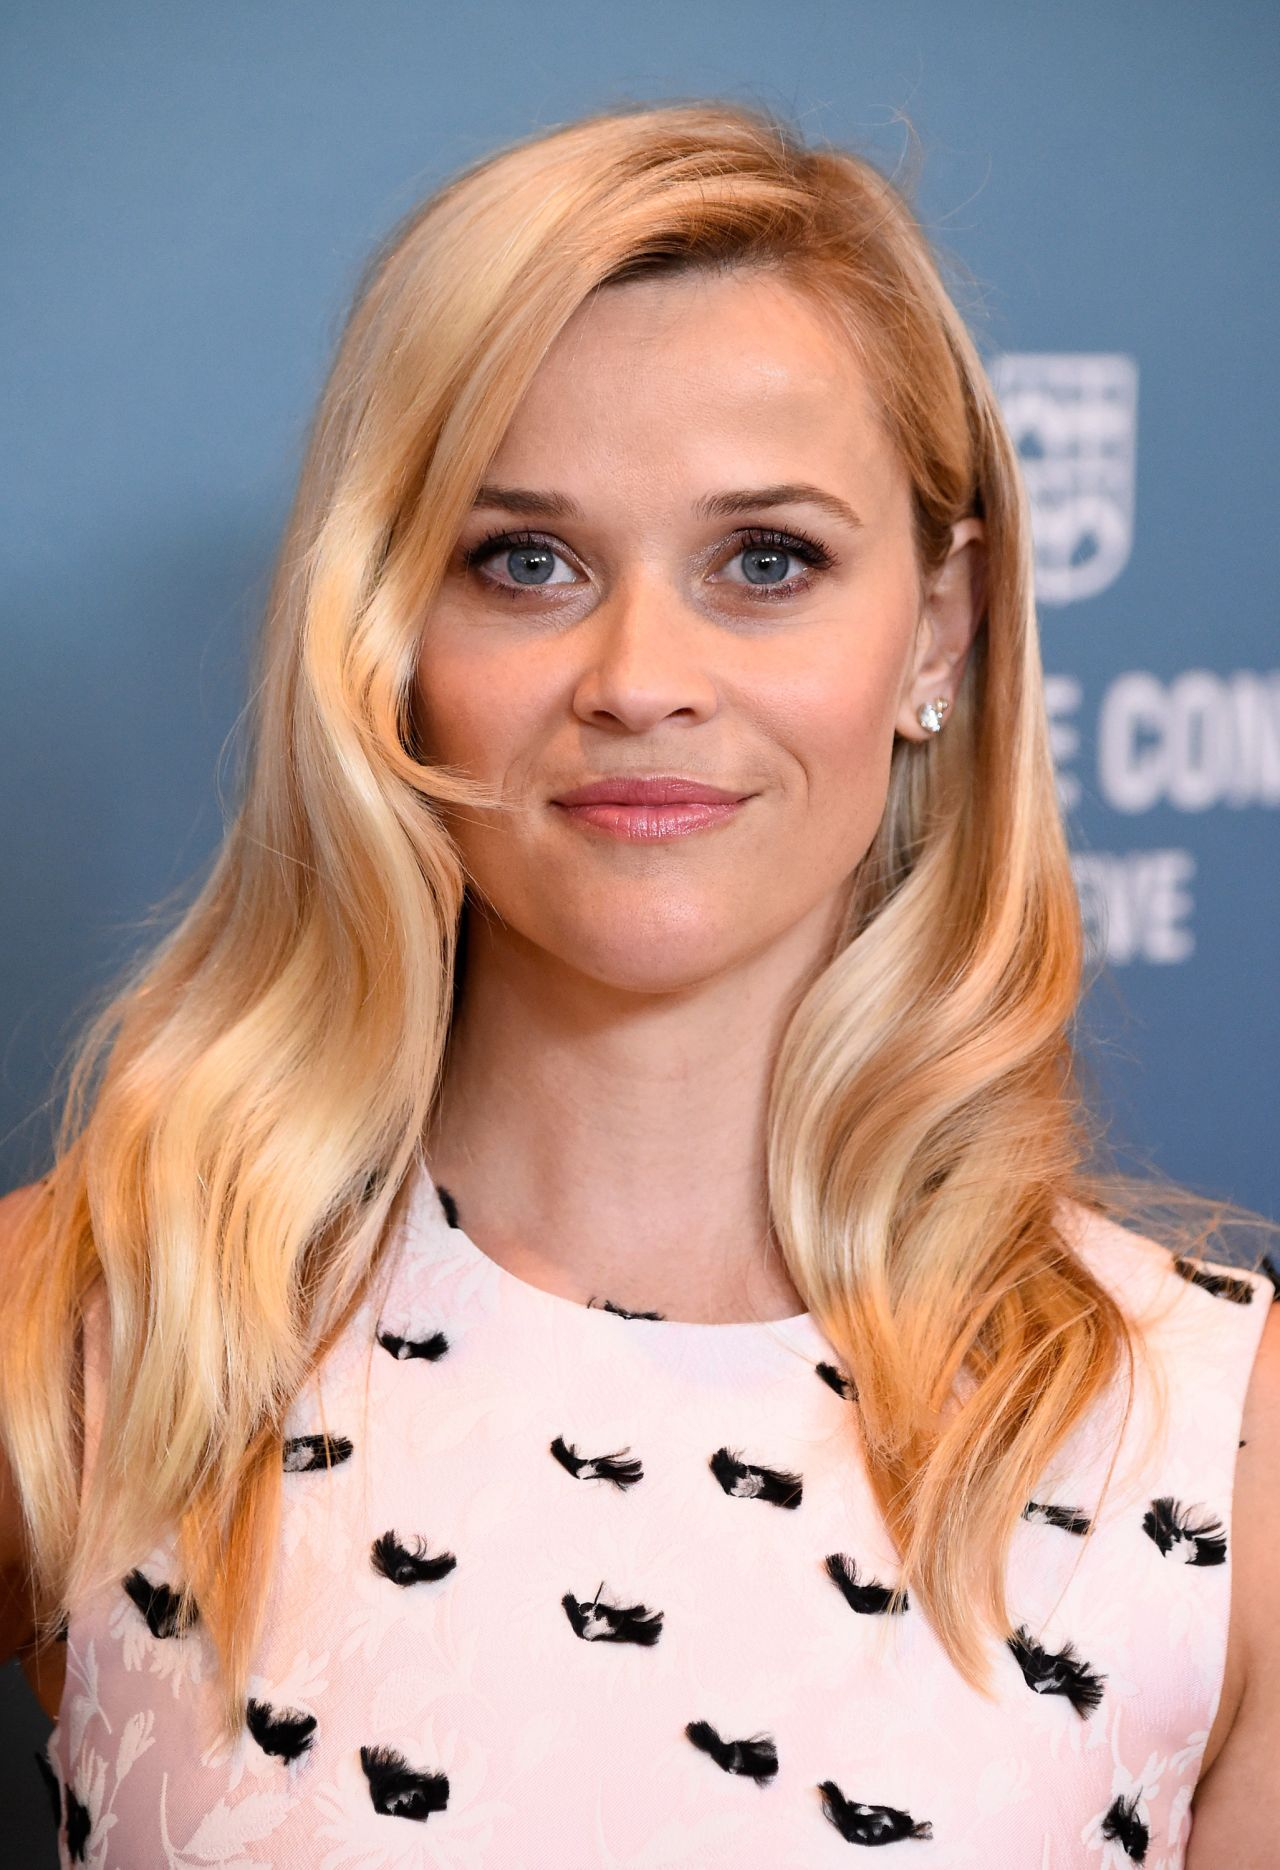 reese-witherspoon-variety-s-power-of-women-luncheon-in-beverly-hills-october-2015_2